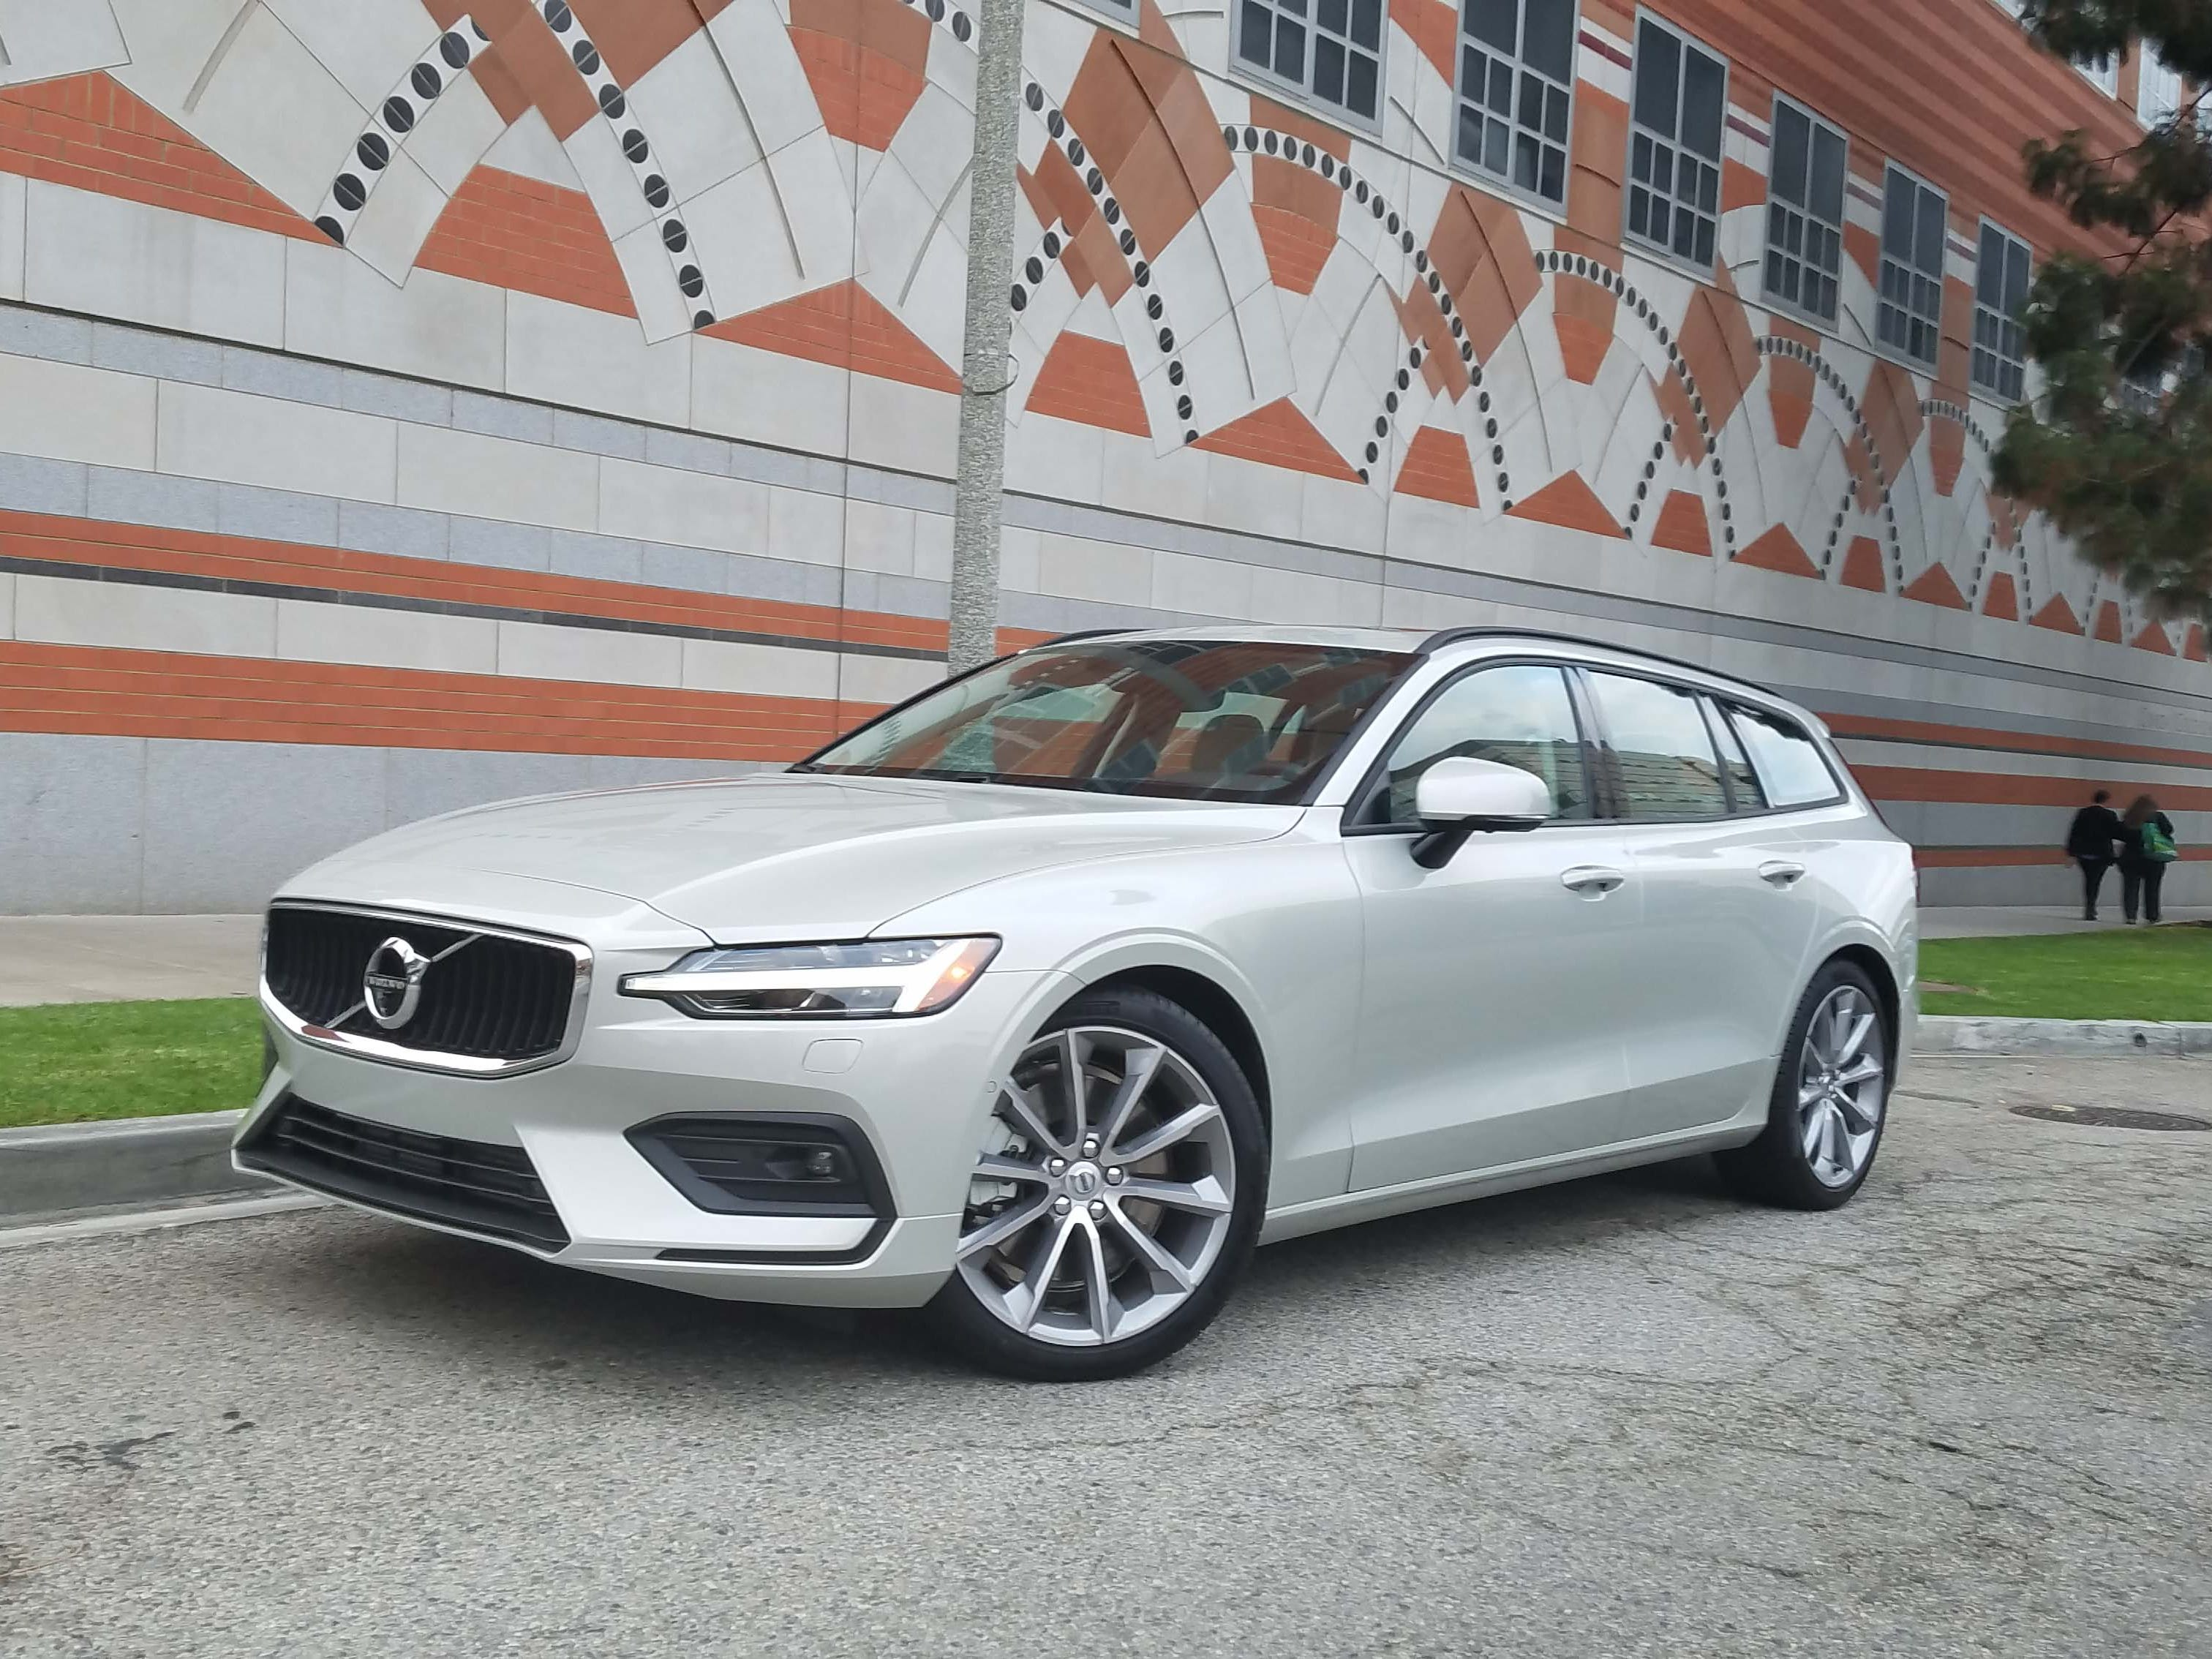 The gorgeous 2019 Volvo V60 wagon offers styling, acres of rear cargo space and roof access. It starts at about $3K more than the S60 sedan.